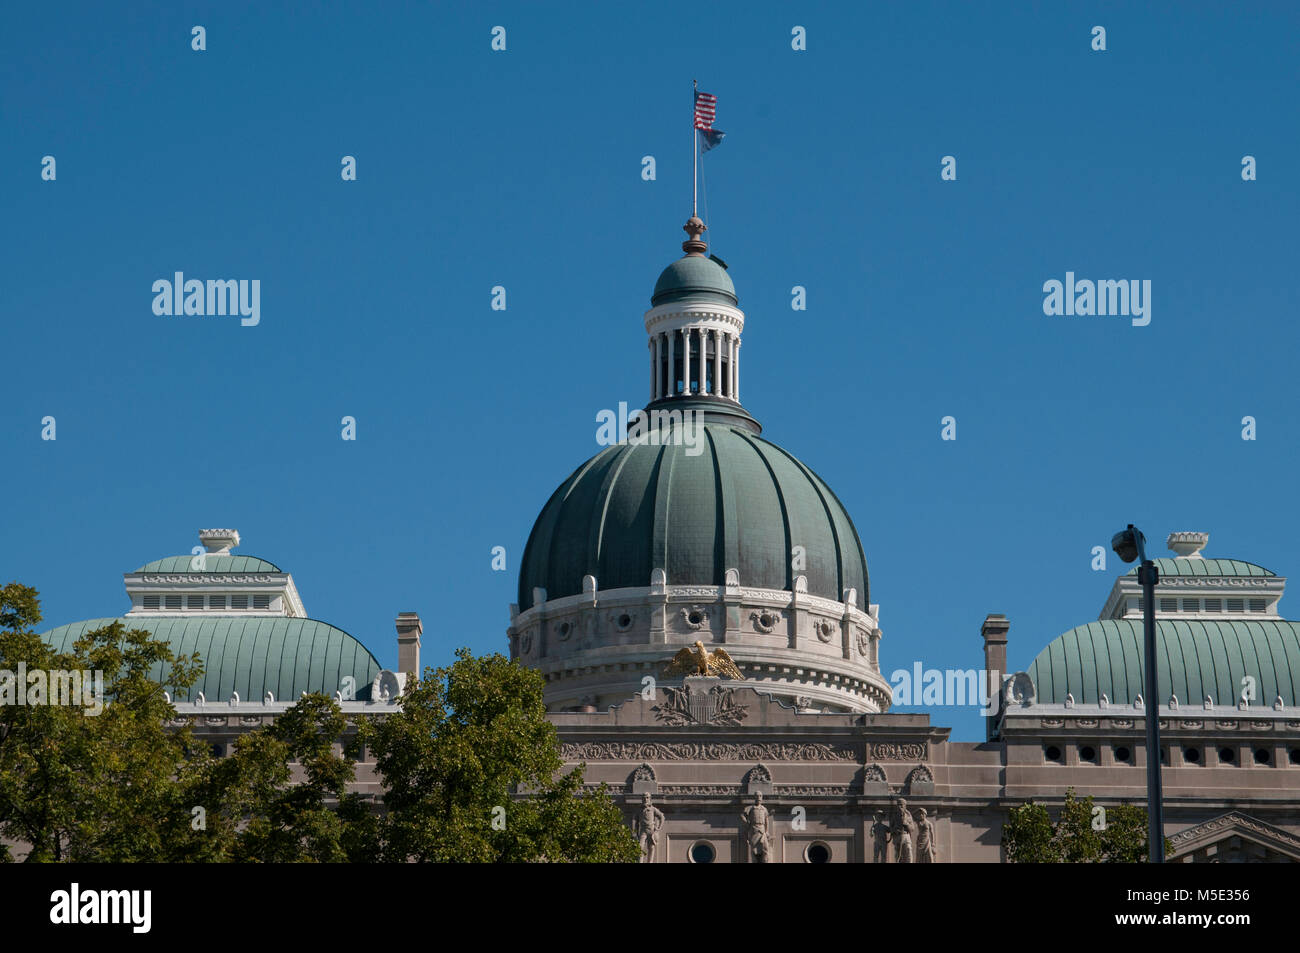 Indiana State Capital Building  / Dome , Indianapolis, Indiana USA - Stock Image